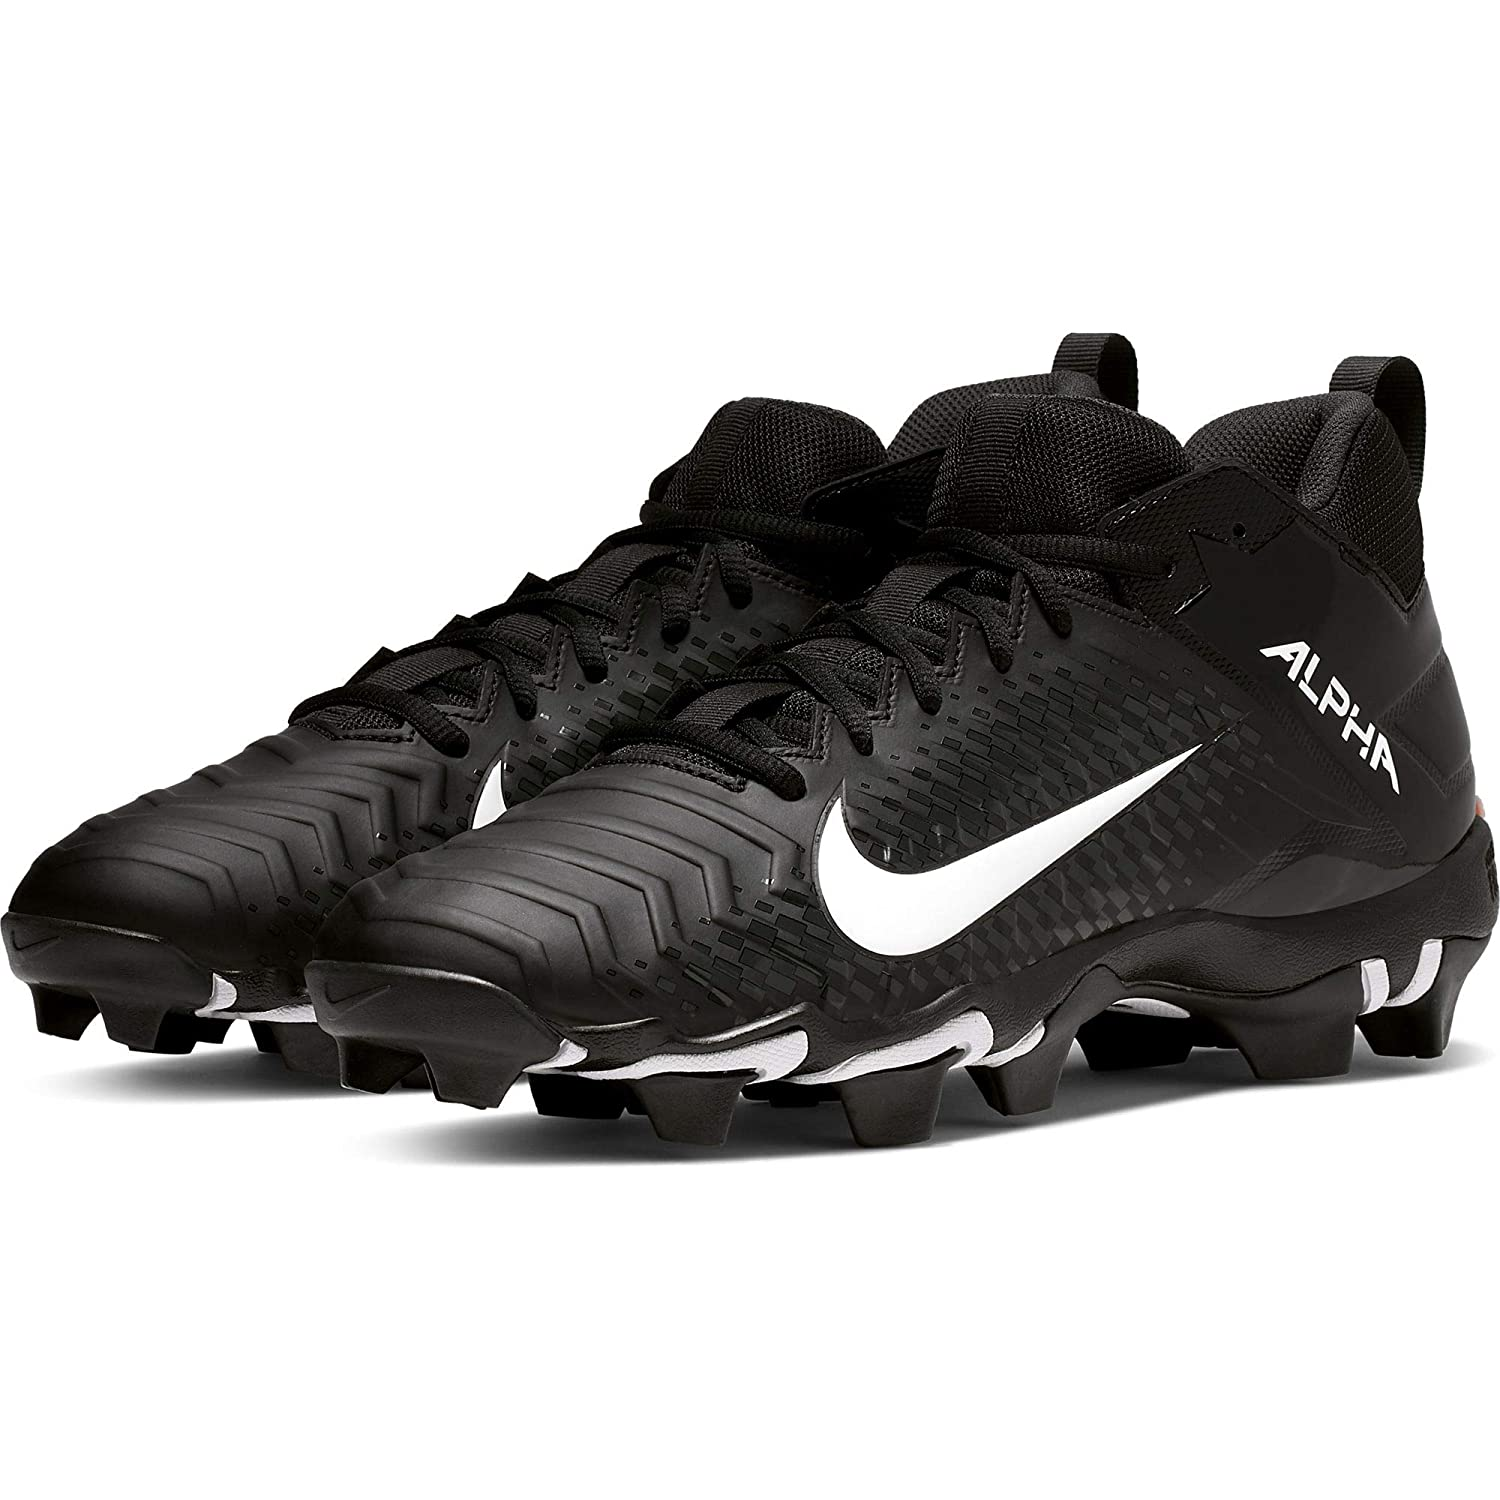 Nike Men's Alpha Menace 2 Shark Wide Football Cleat 黒/白い/Anthracite Size 13 M US